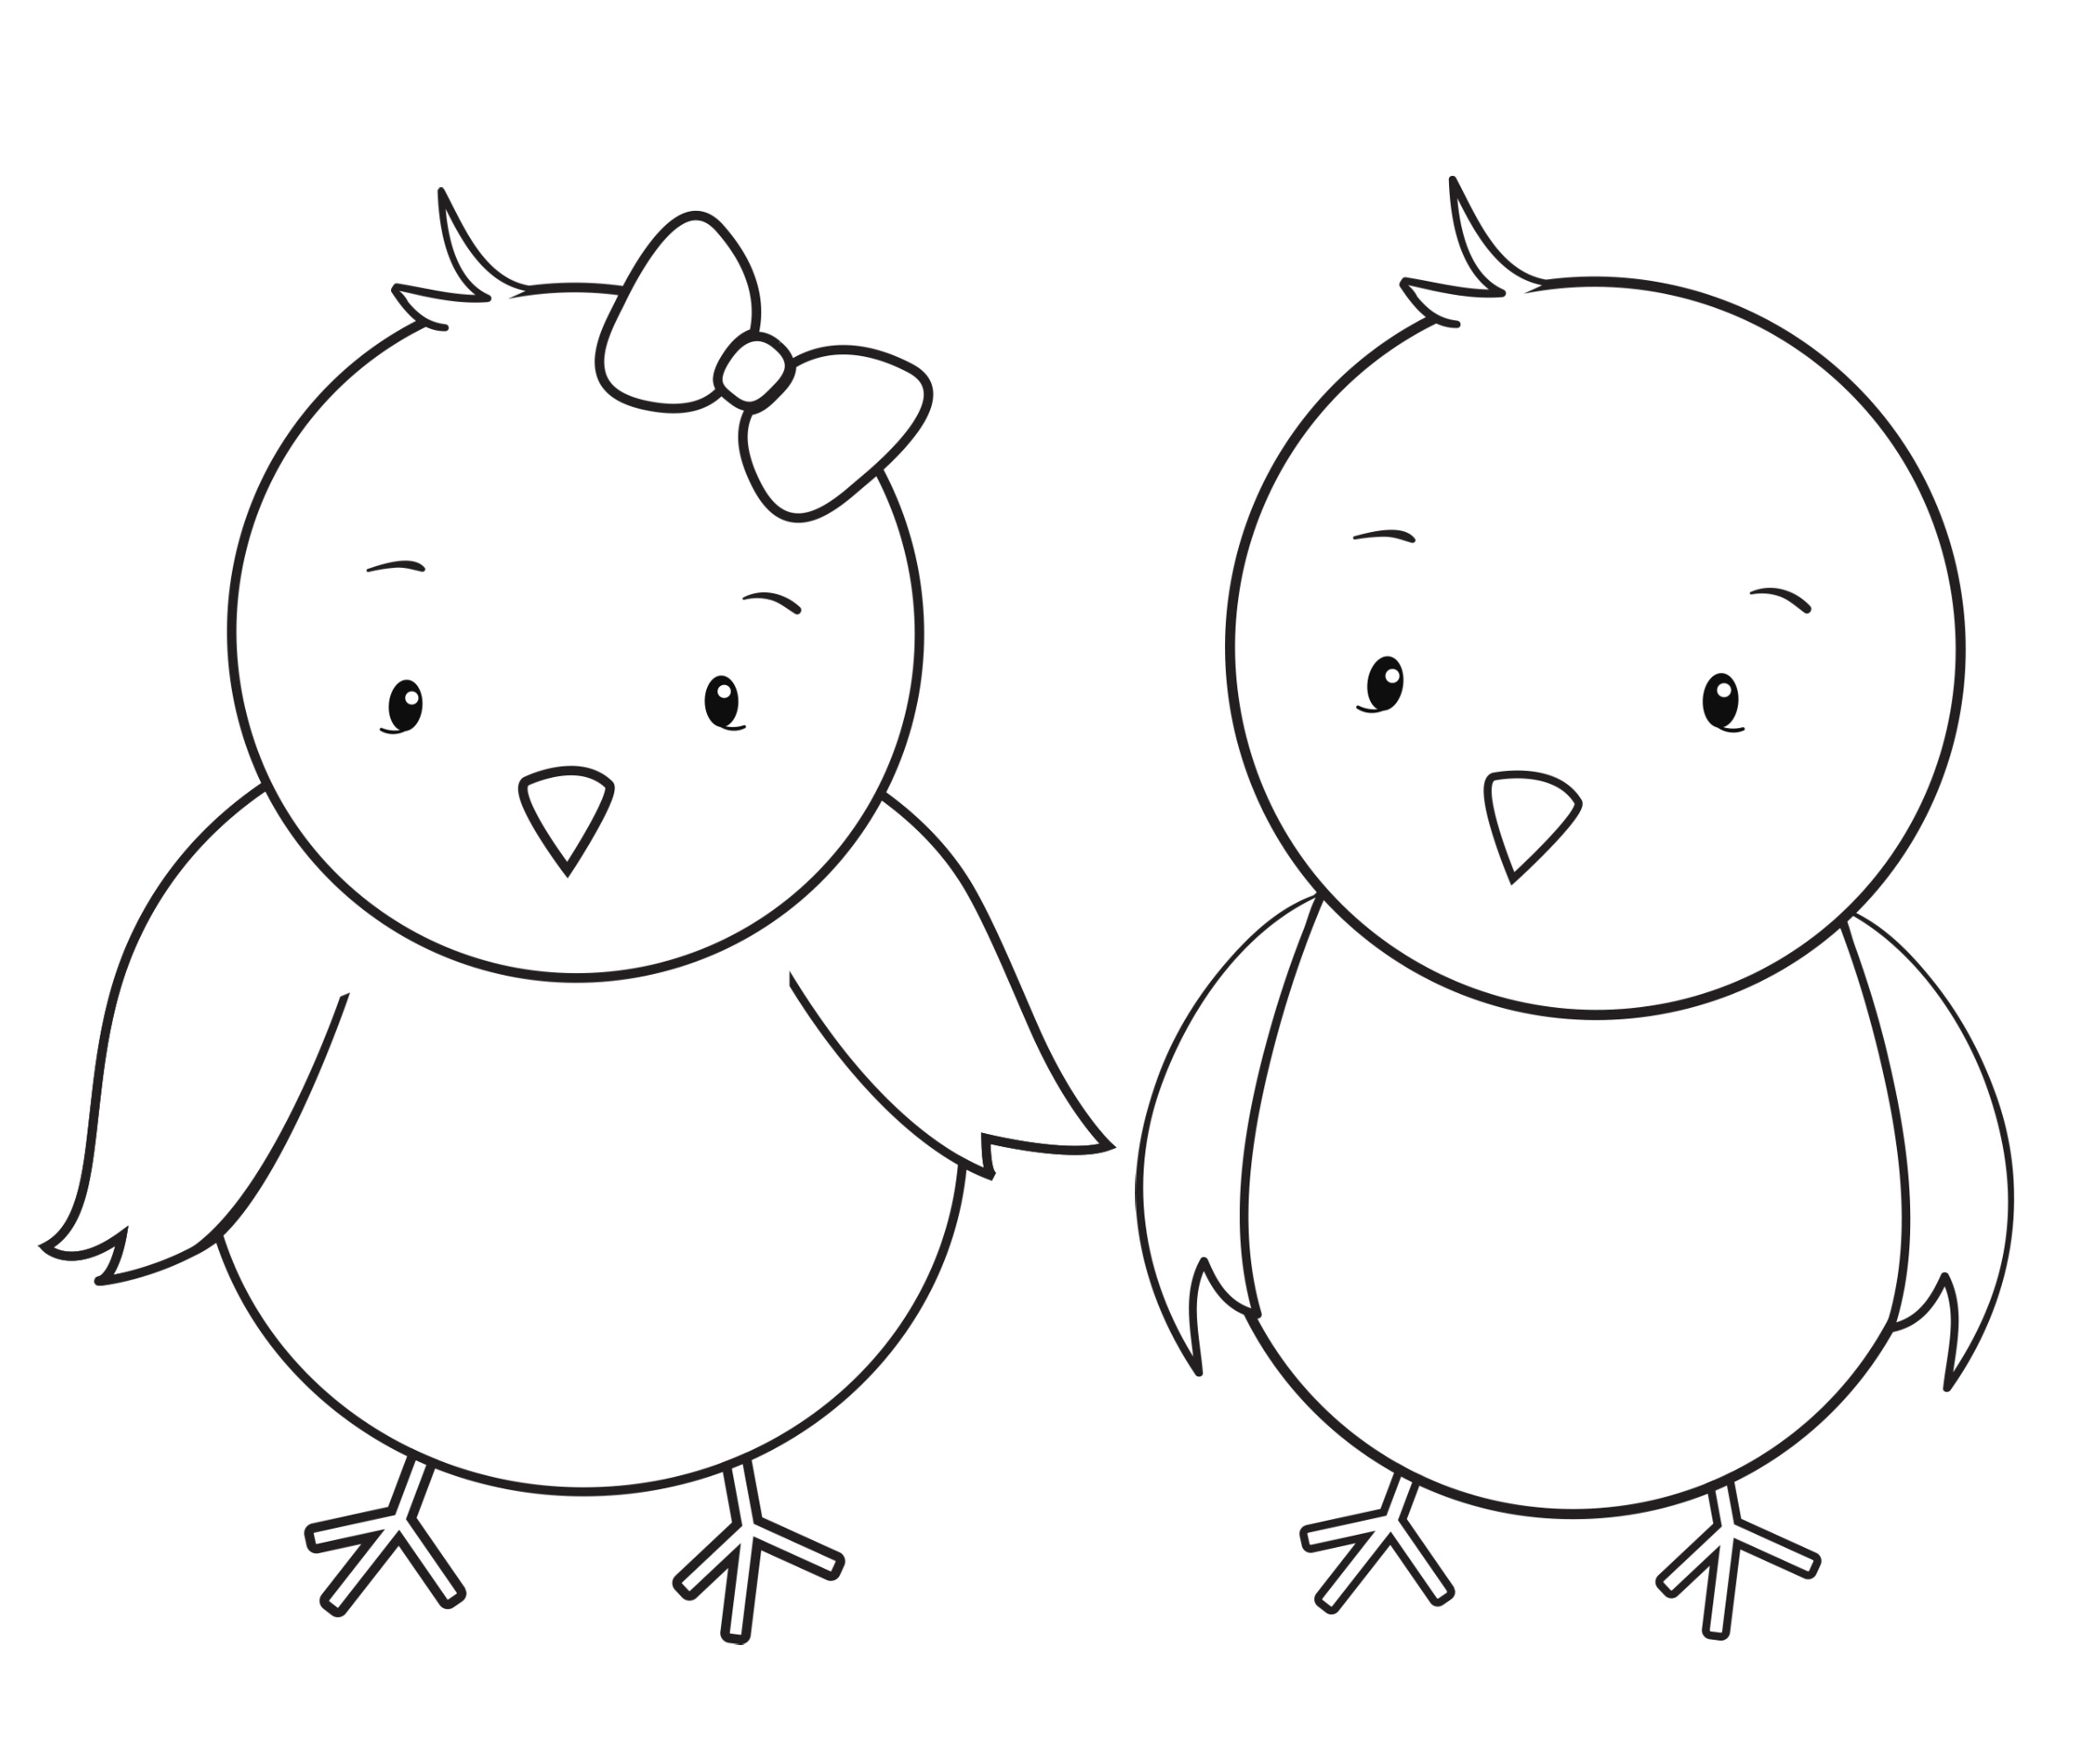 Chicks Coloring Pages for Adults